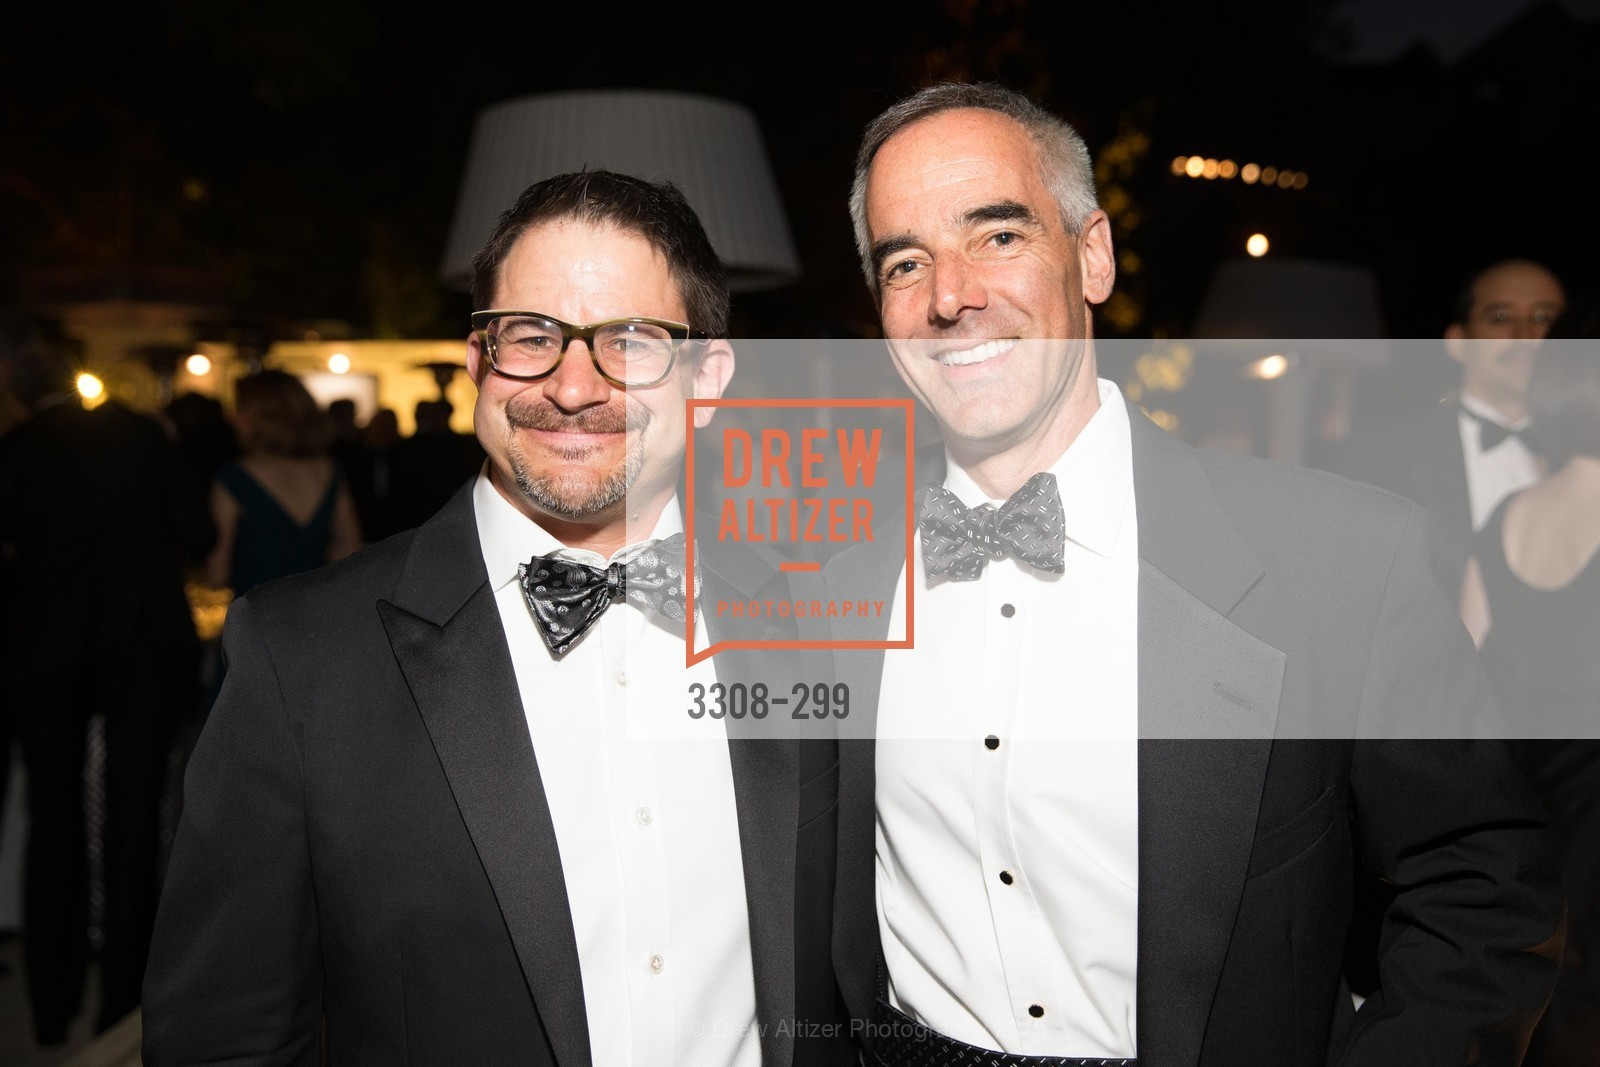 David Hornik, Matt Blickman, Stanford University's Cantor Arts Center Presents Rodin by Moonlight, Stanford University, September 19th, 2015,Drew Altizer, Drew Altizer Photography, full-service agency, private events, San Francisco photographer, photographer california